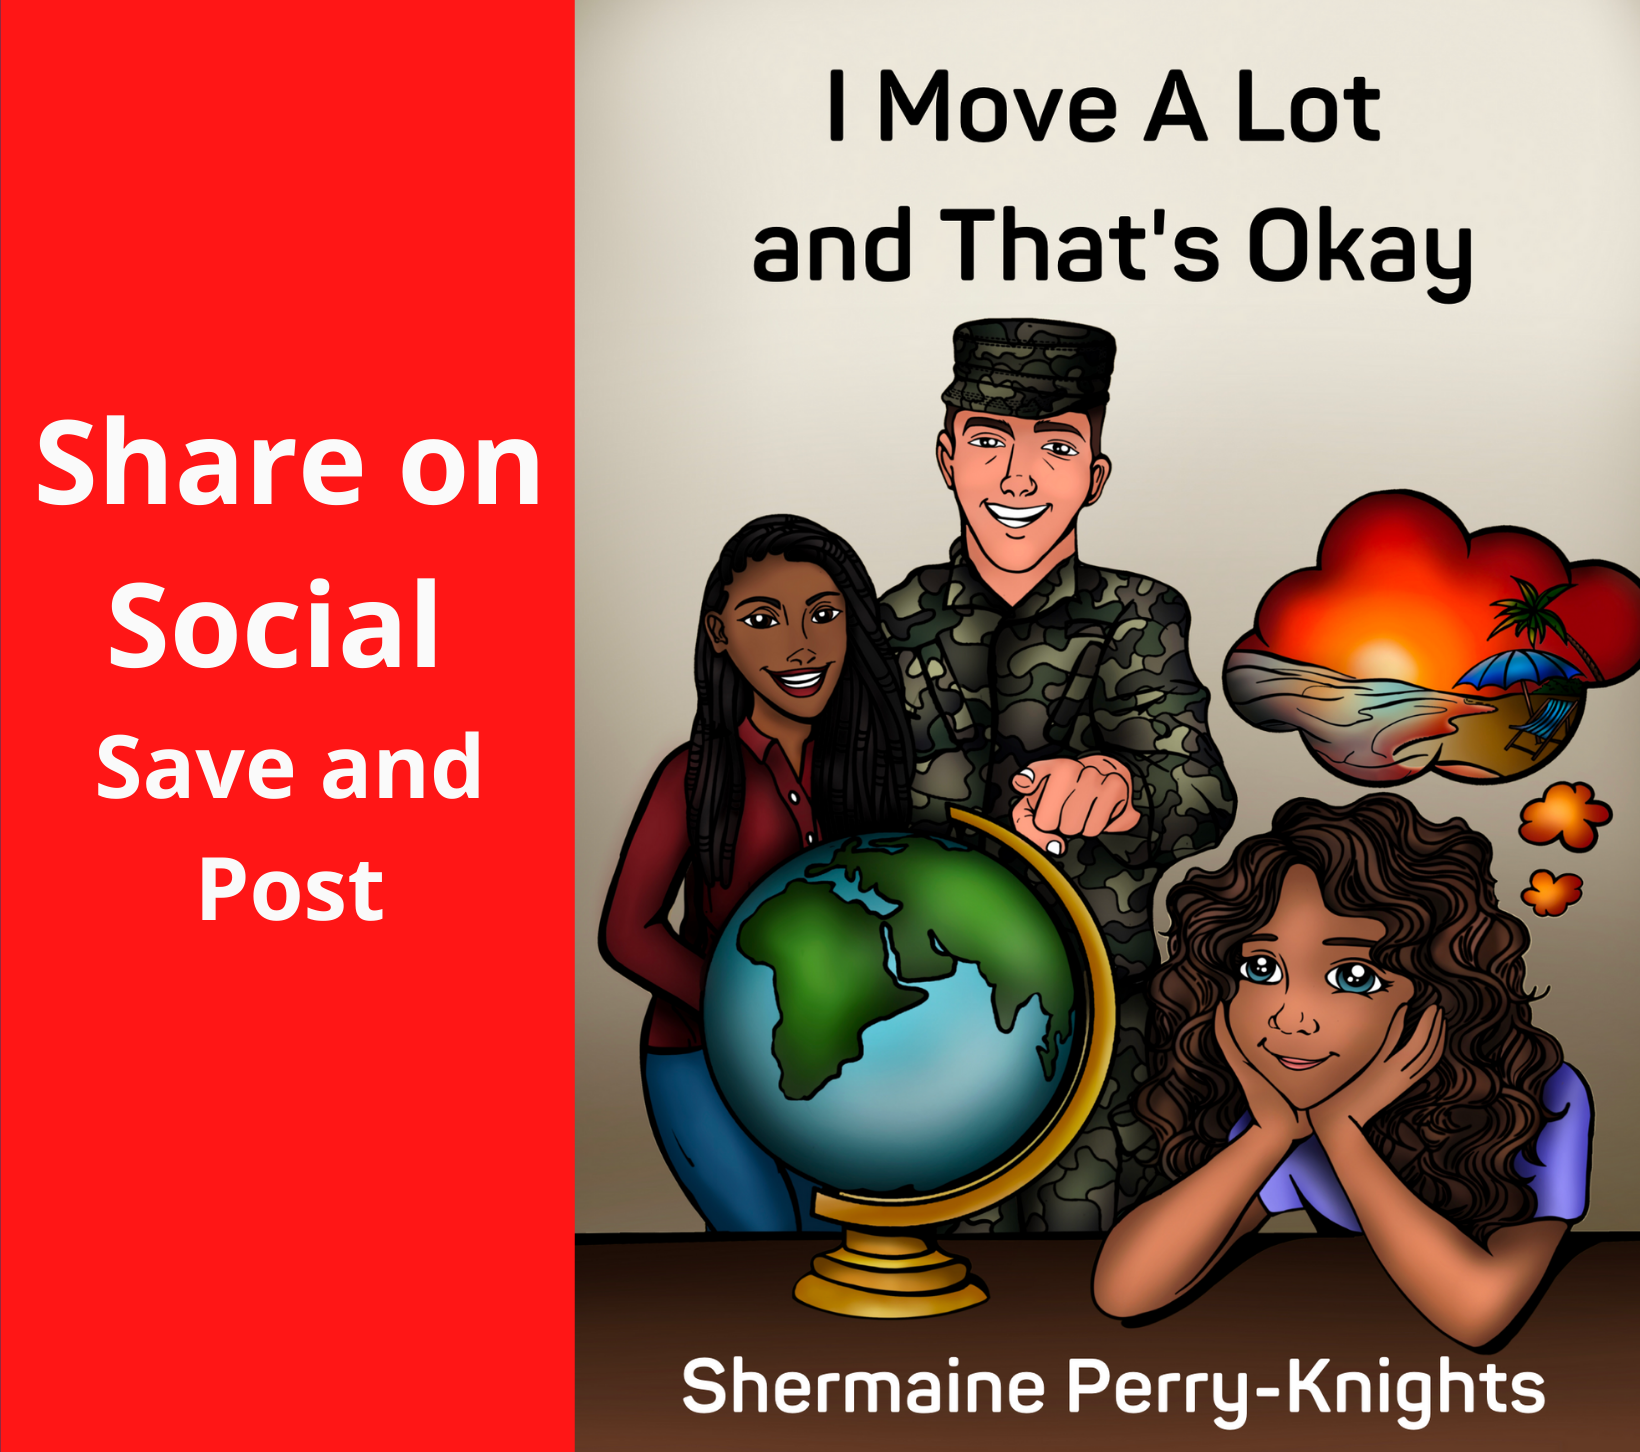 Share on Social -promo partner page